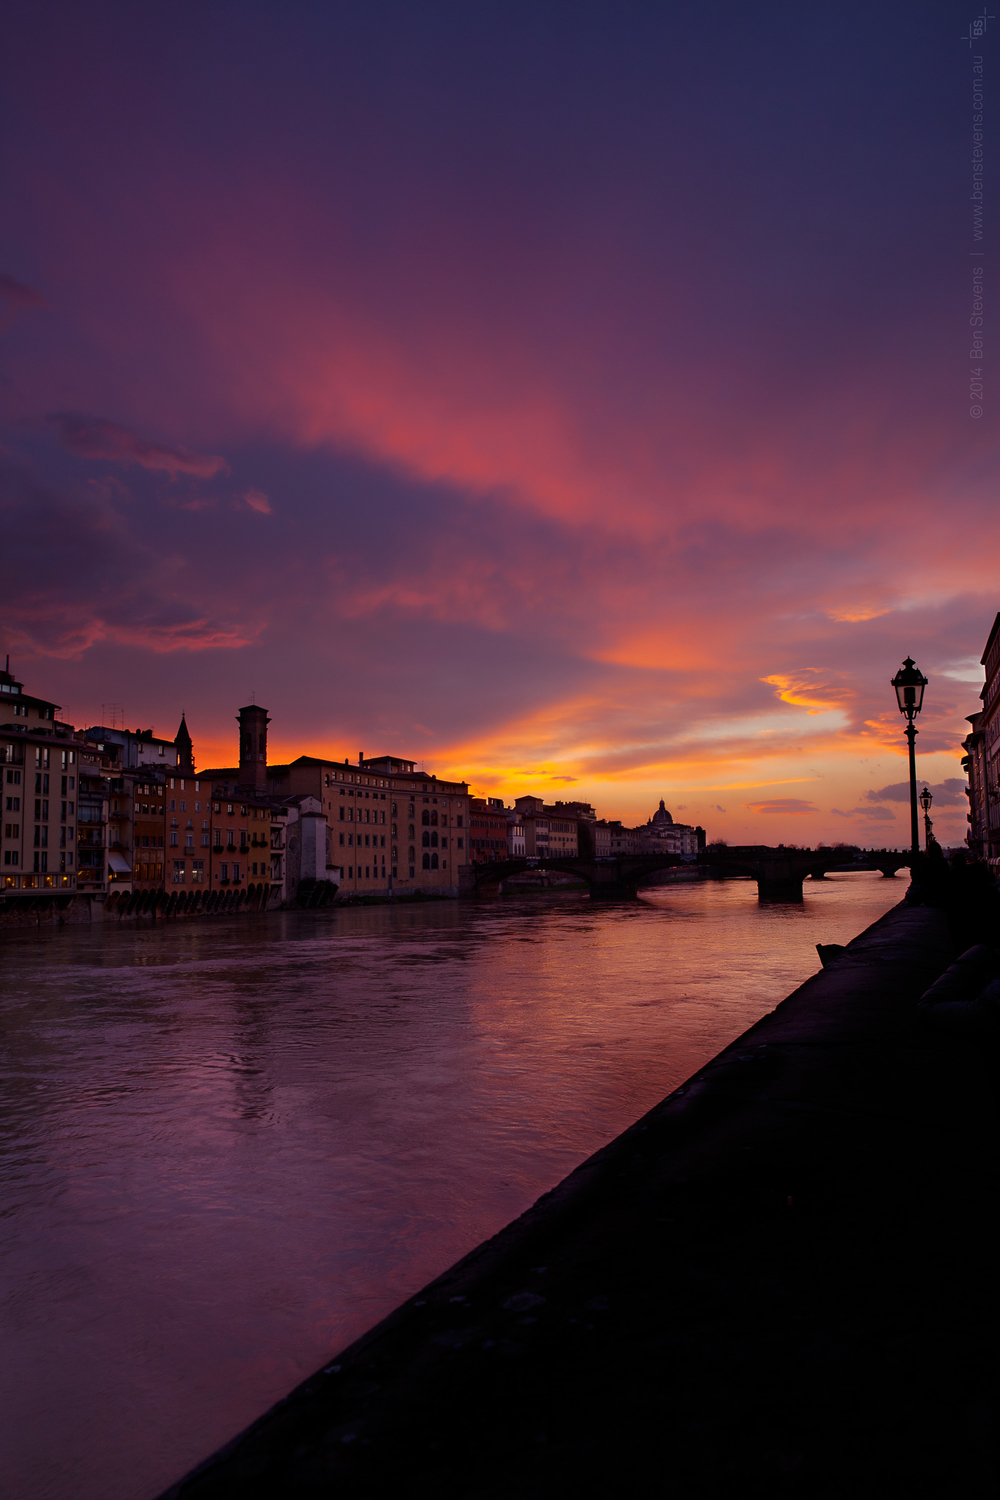 Firenze |Florence, Italy March 2014 Sunset at Ponte Vehicco over the Arno River. Purchase printshere